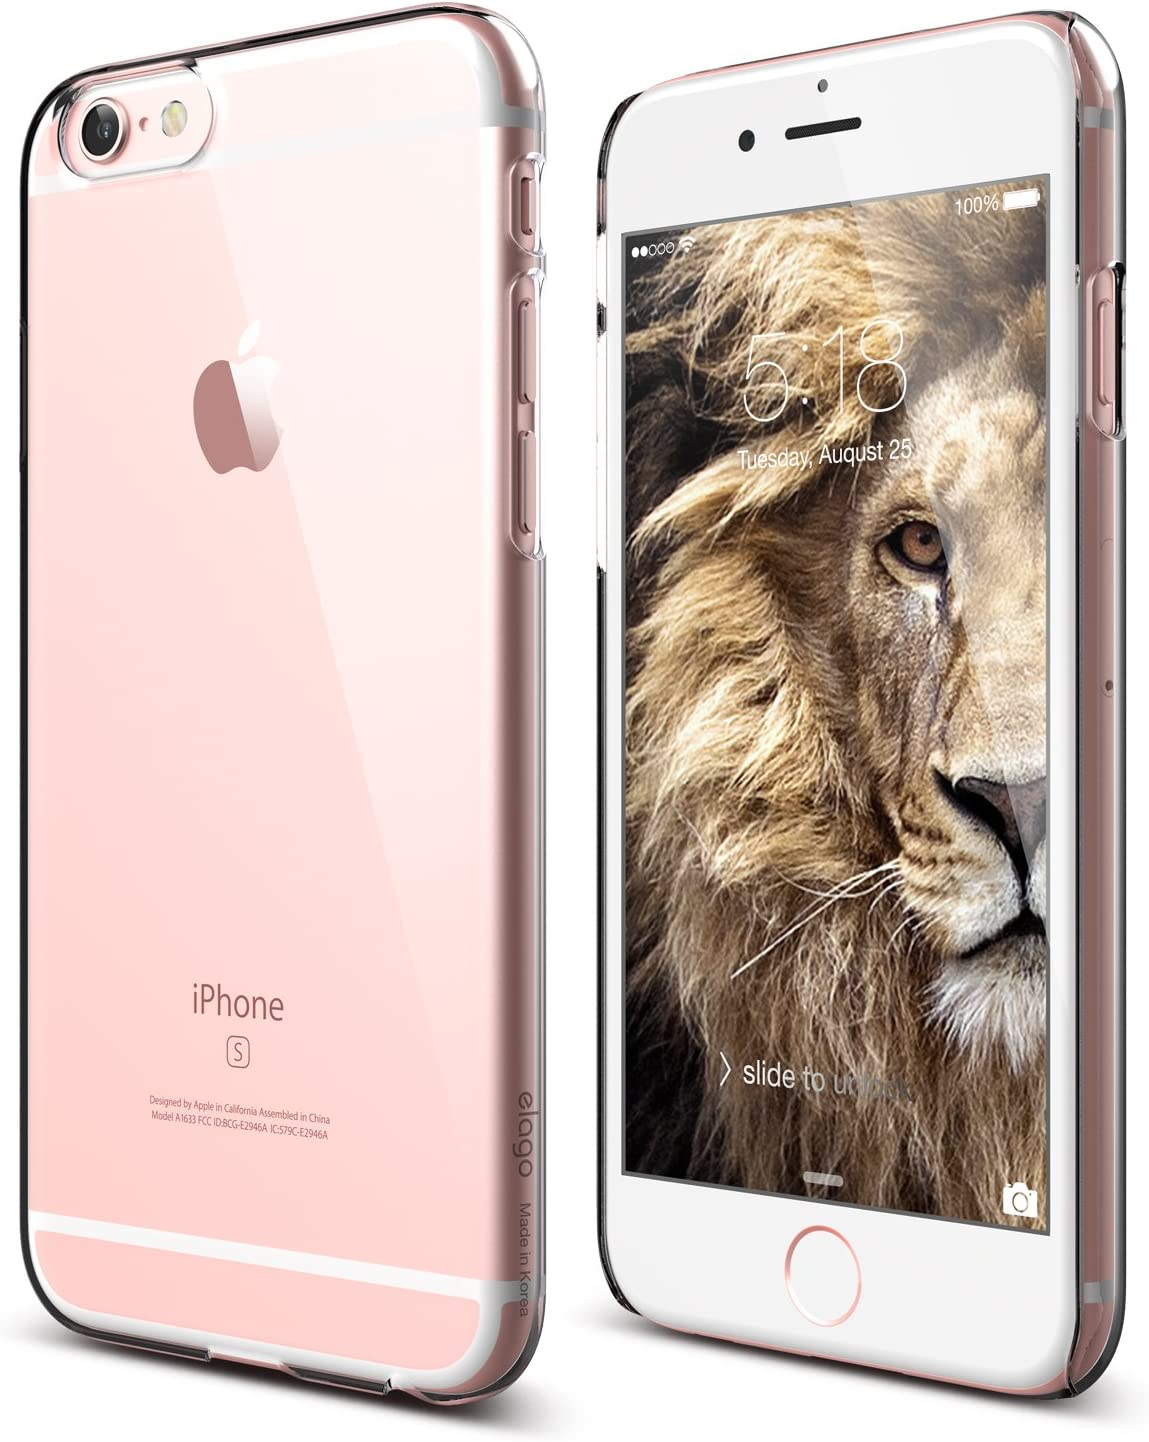 iPhone 6S Case elago S6 Slimfit2 The Frosted for 6 Year-end latest gift